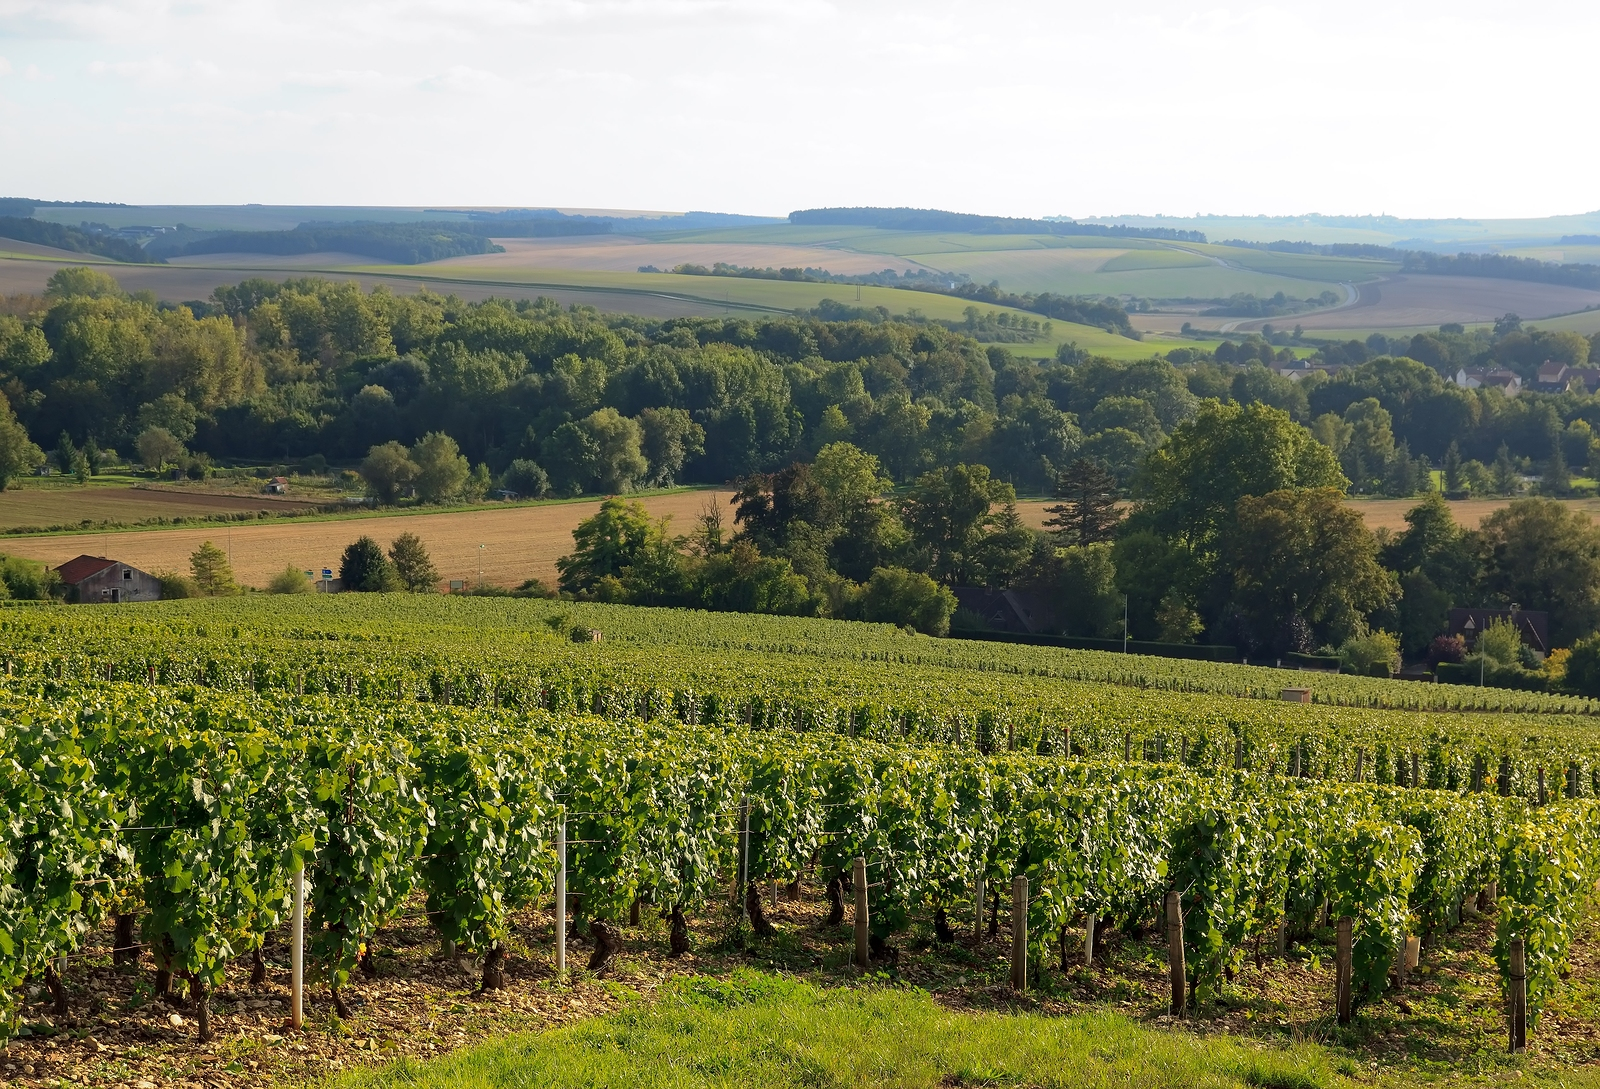 Vineyard of the hillsides of Chablis.